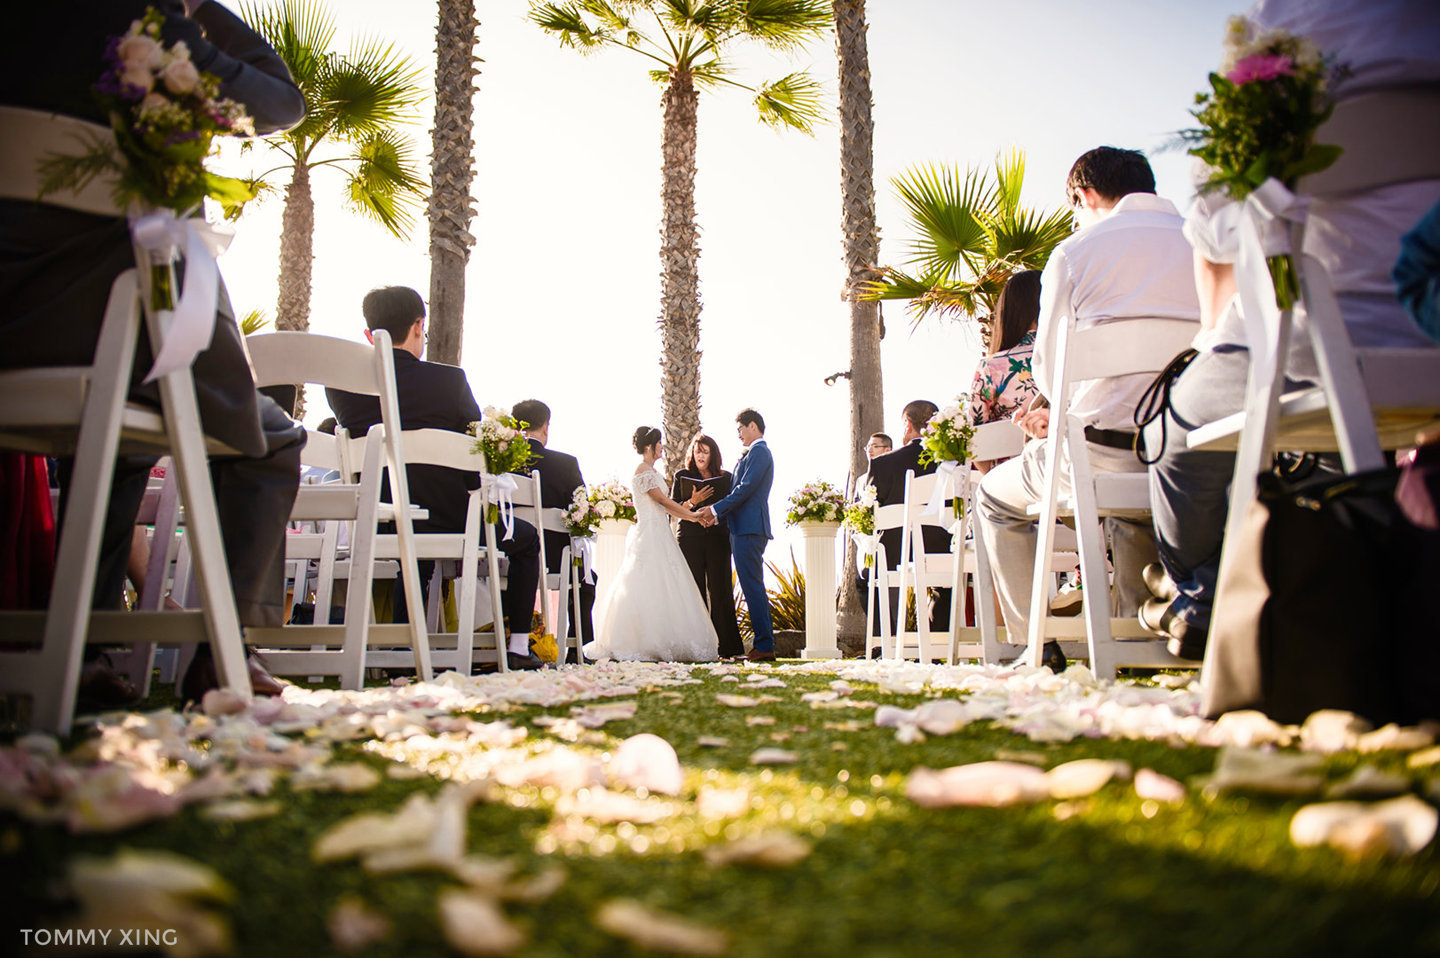 Paradise Point Resort Wedding Xiaolu & Bin San Diego 圣地亚哥婚礼摄影跟拍 Tommy Xing Photography 洛杉矶婚礼婚纱照摄影师 161.jpg